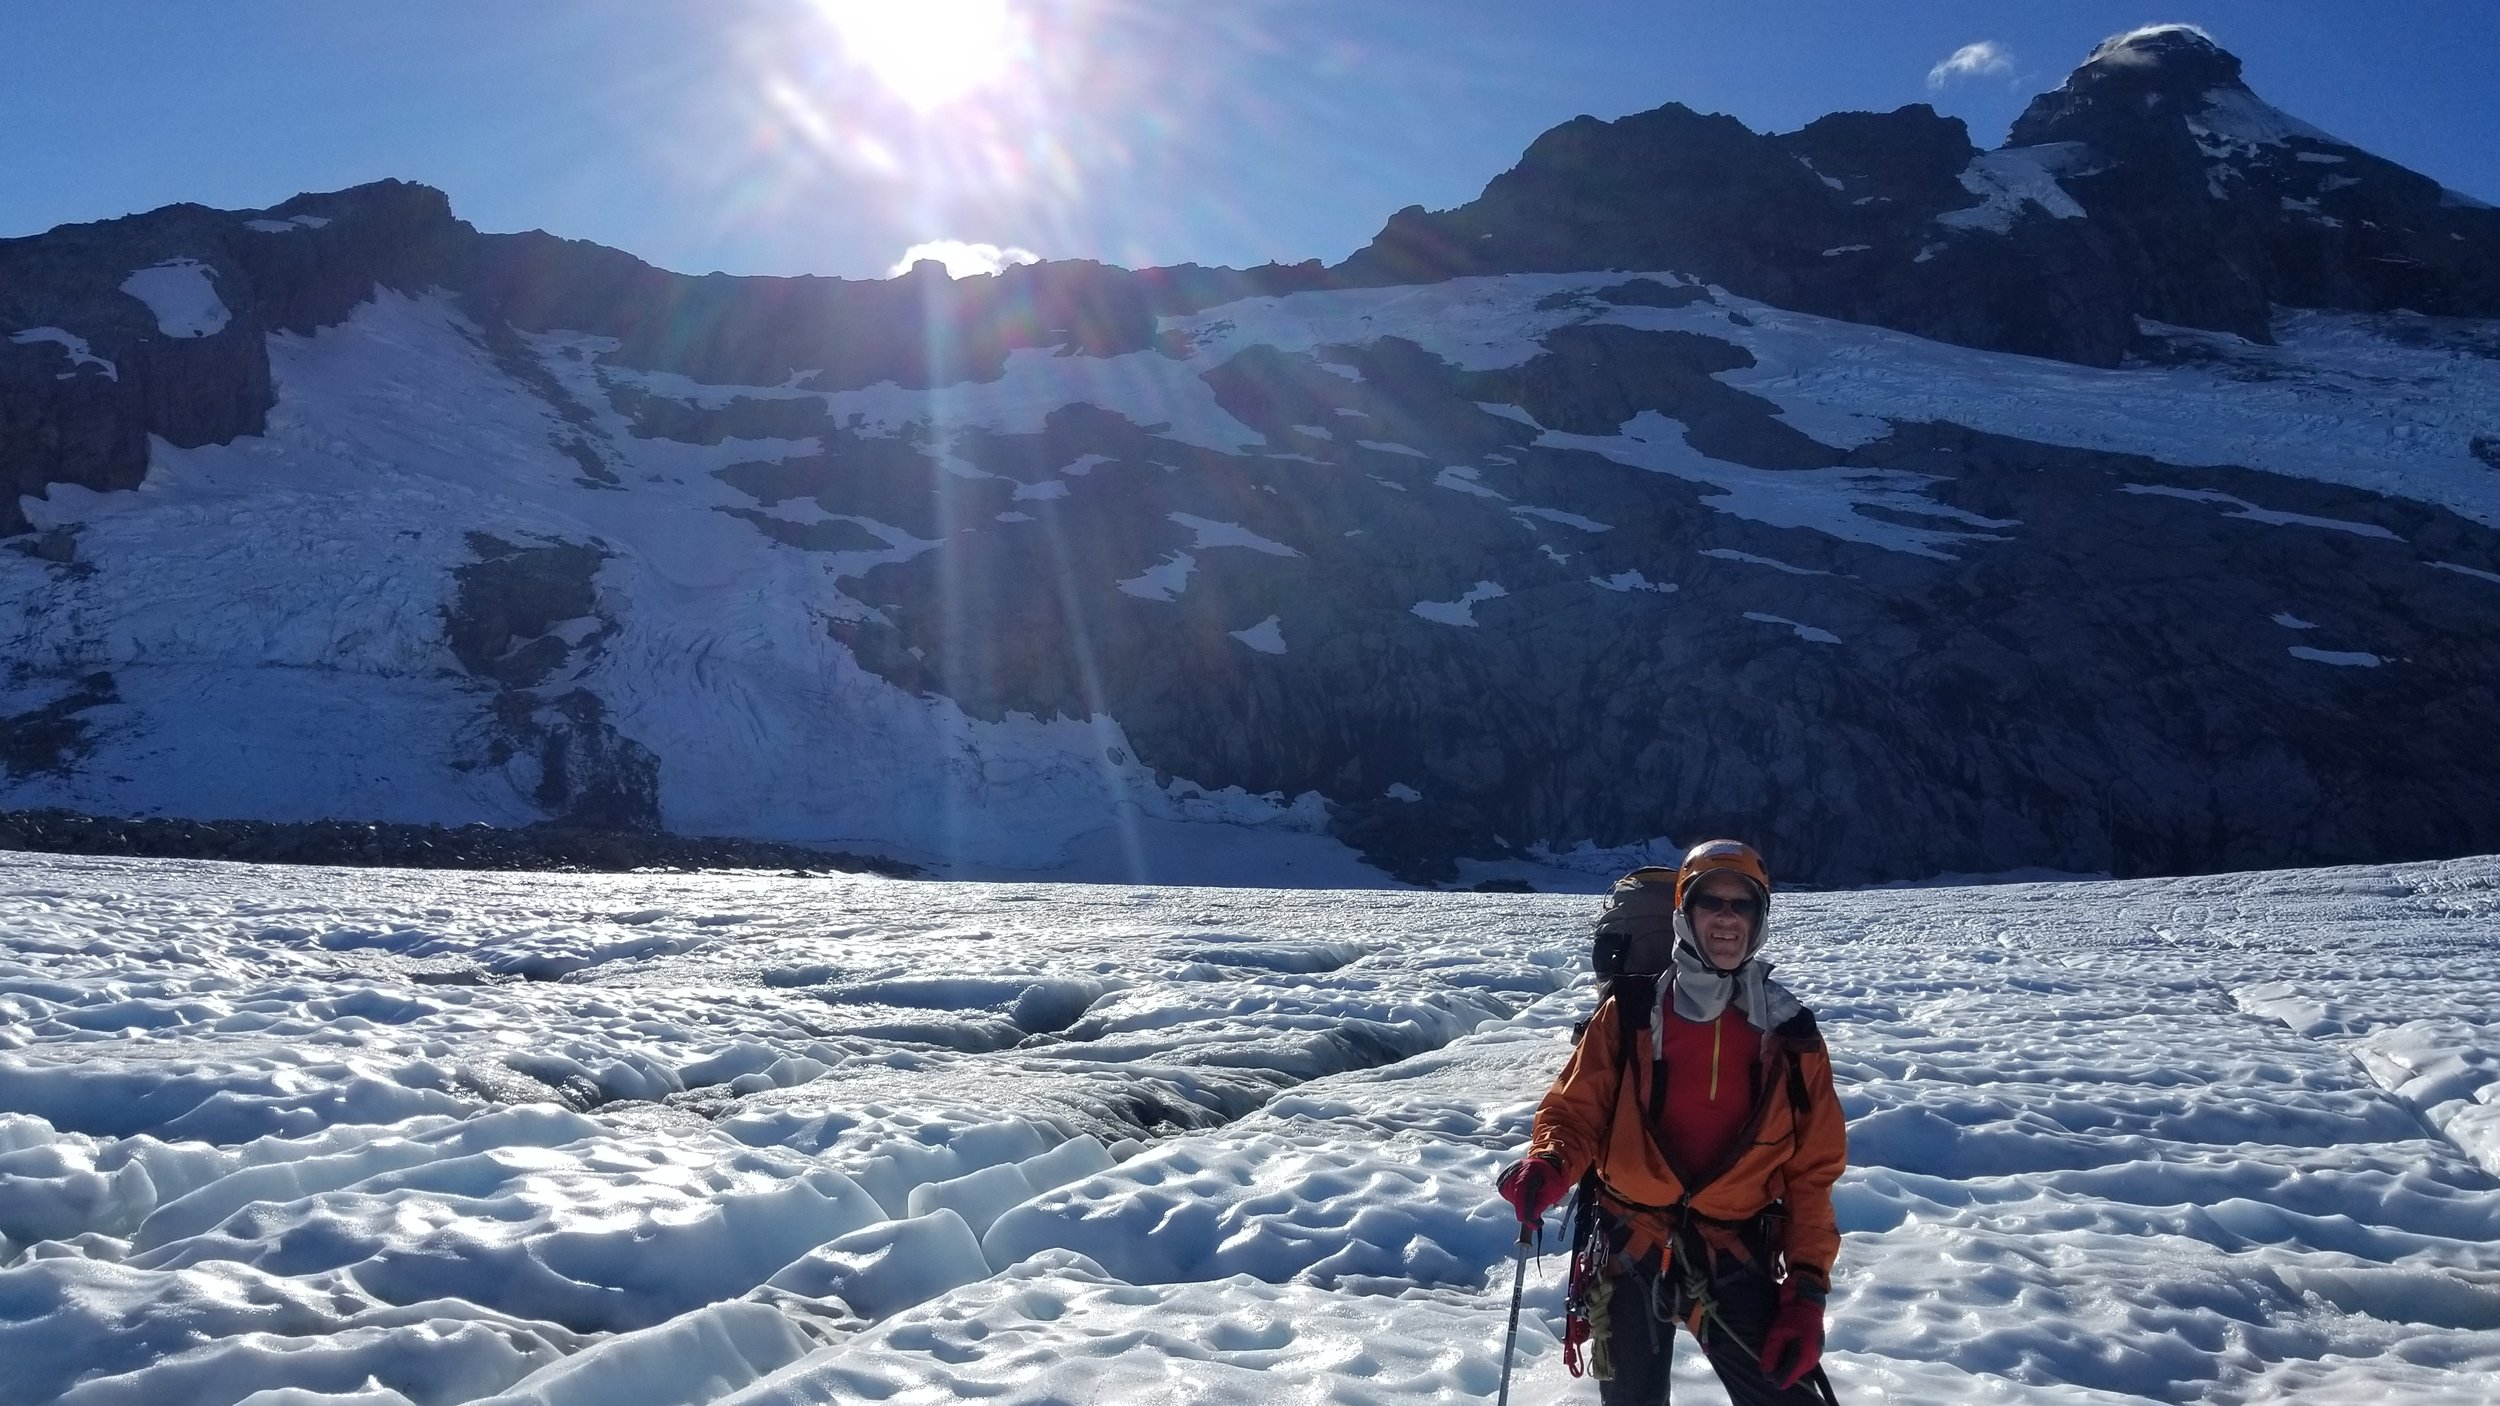 On the Bonar Glacier with the full nw ridge behind